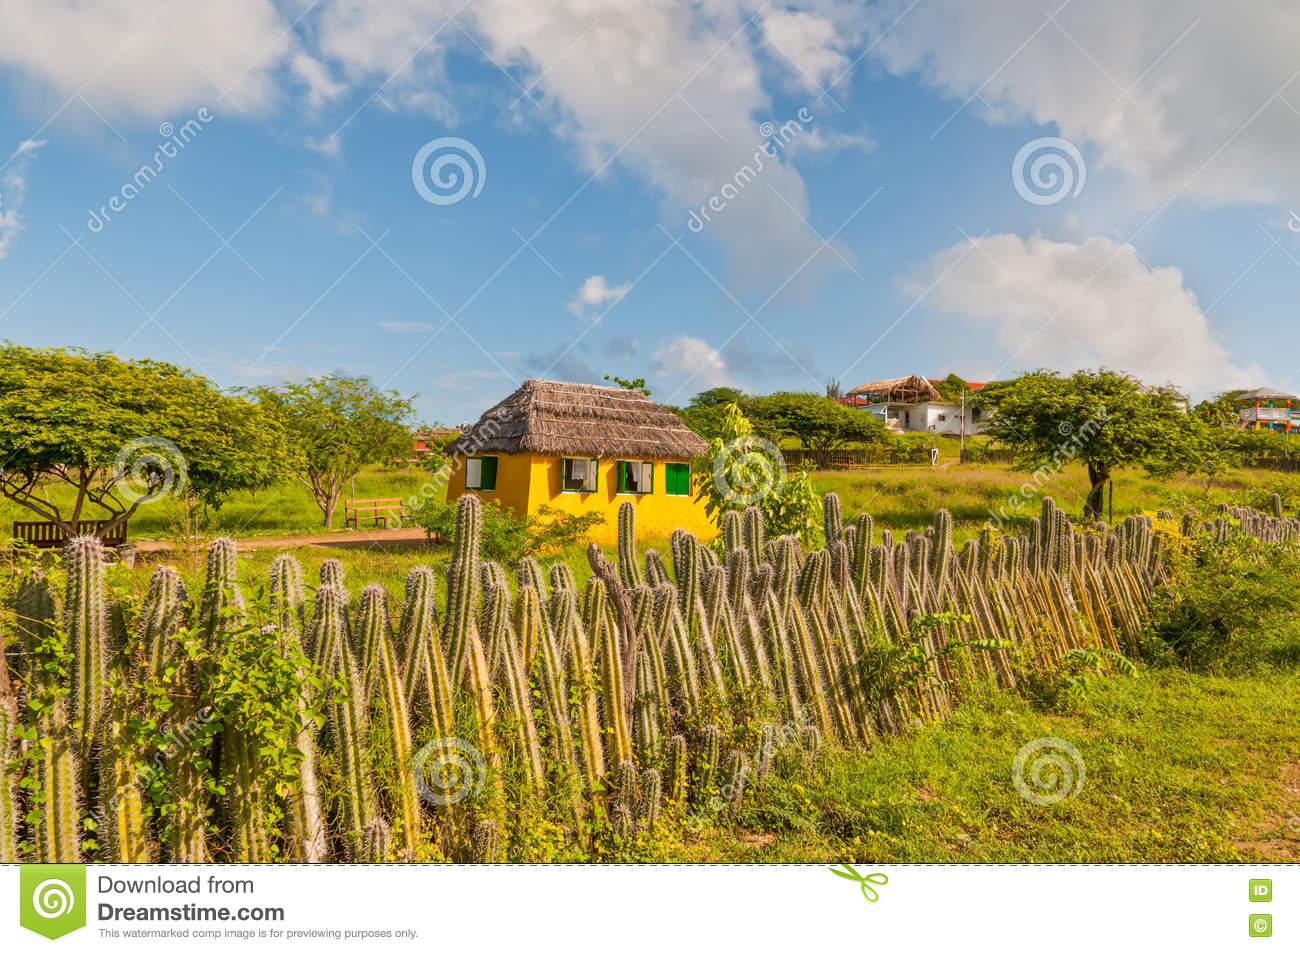 Bonaire yellow home and fence of cactus - Netherlands Antilles